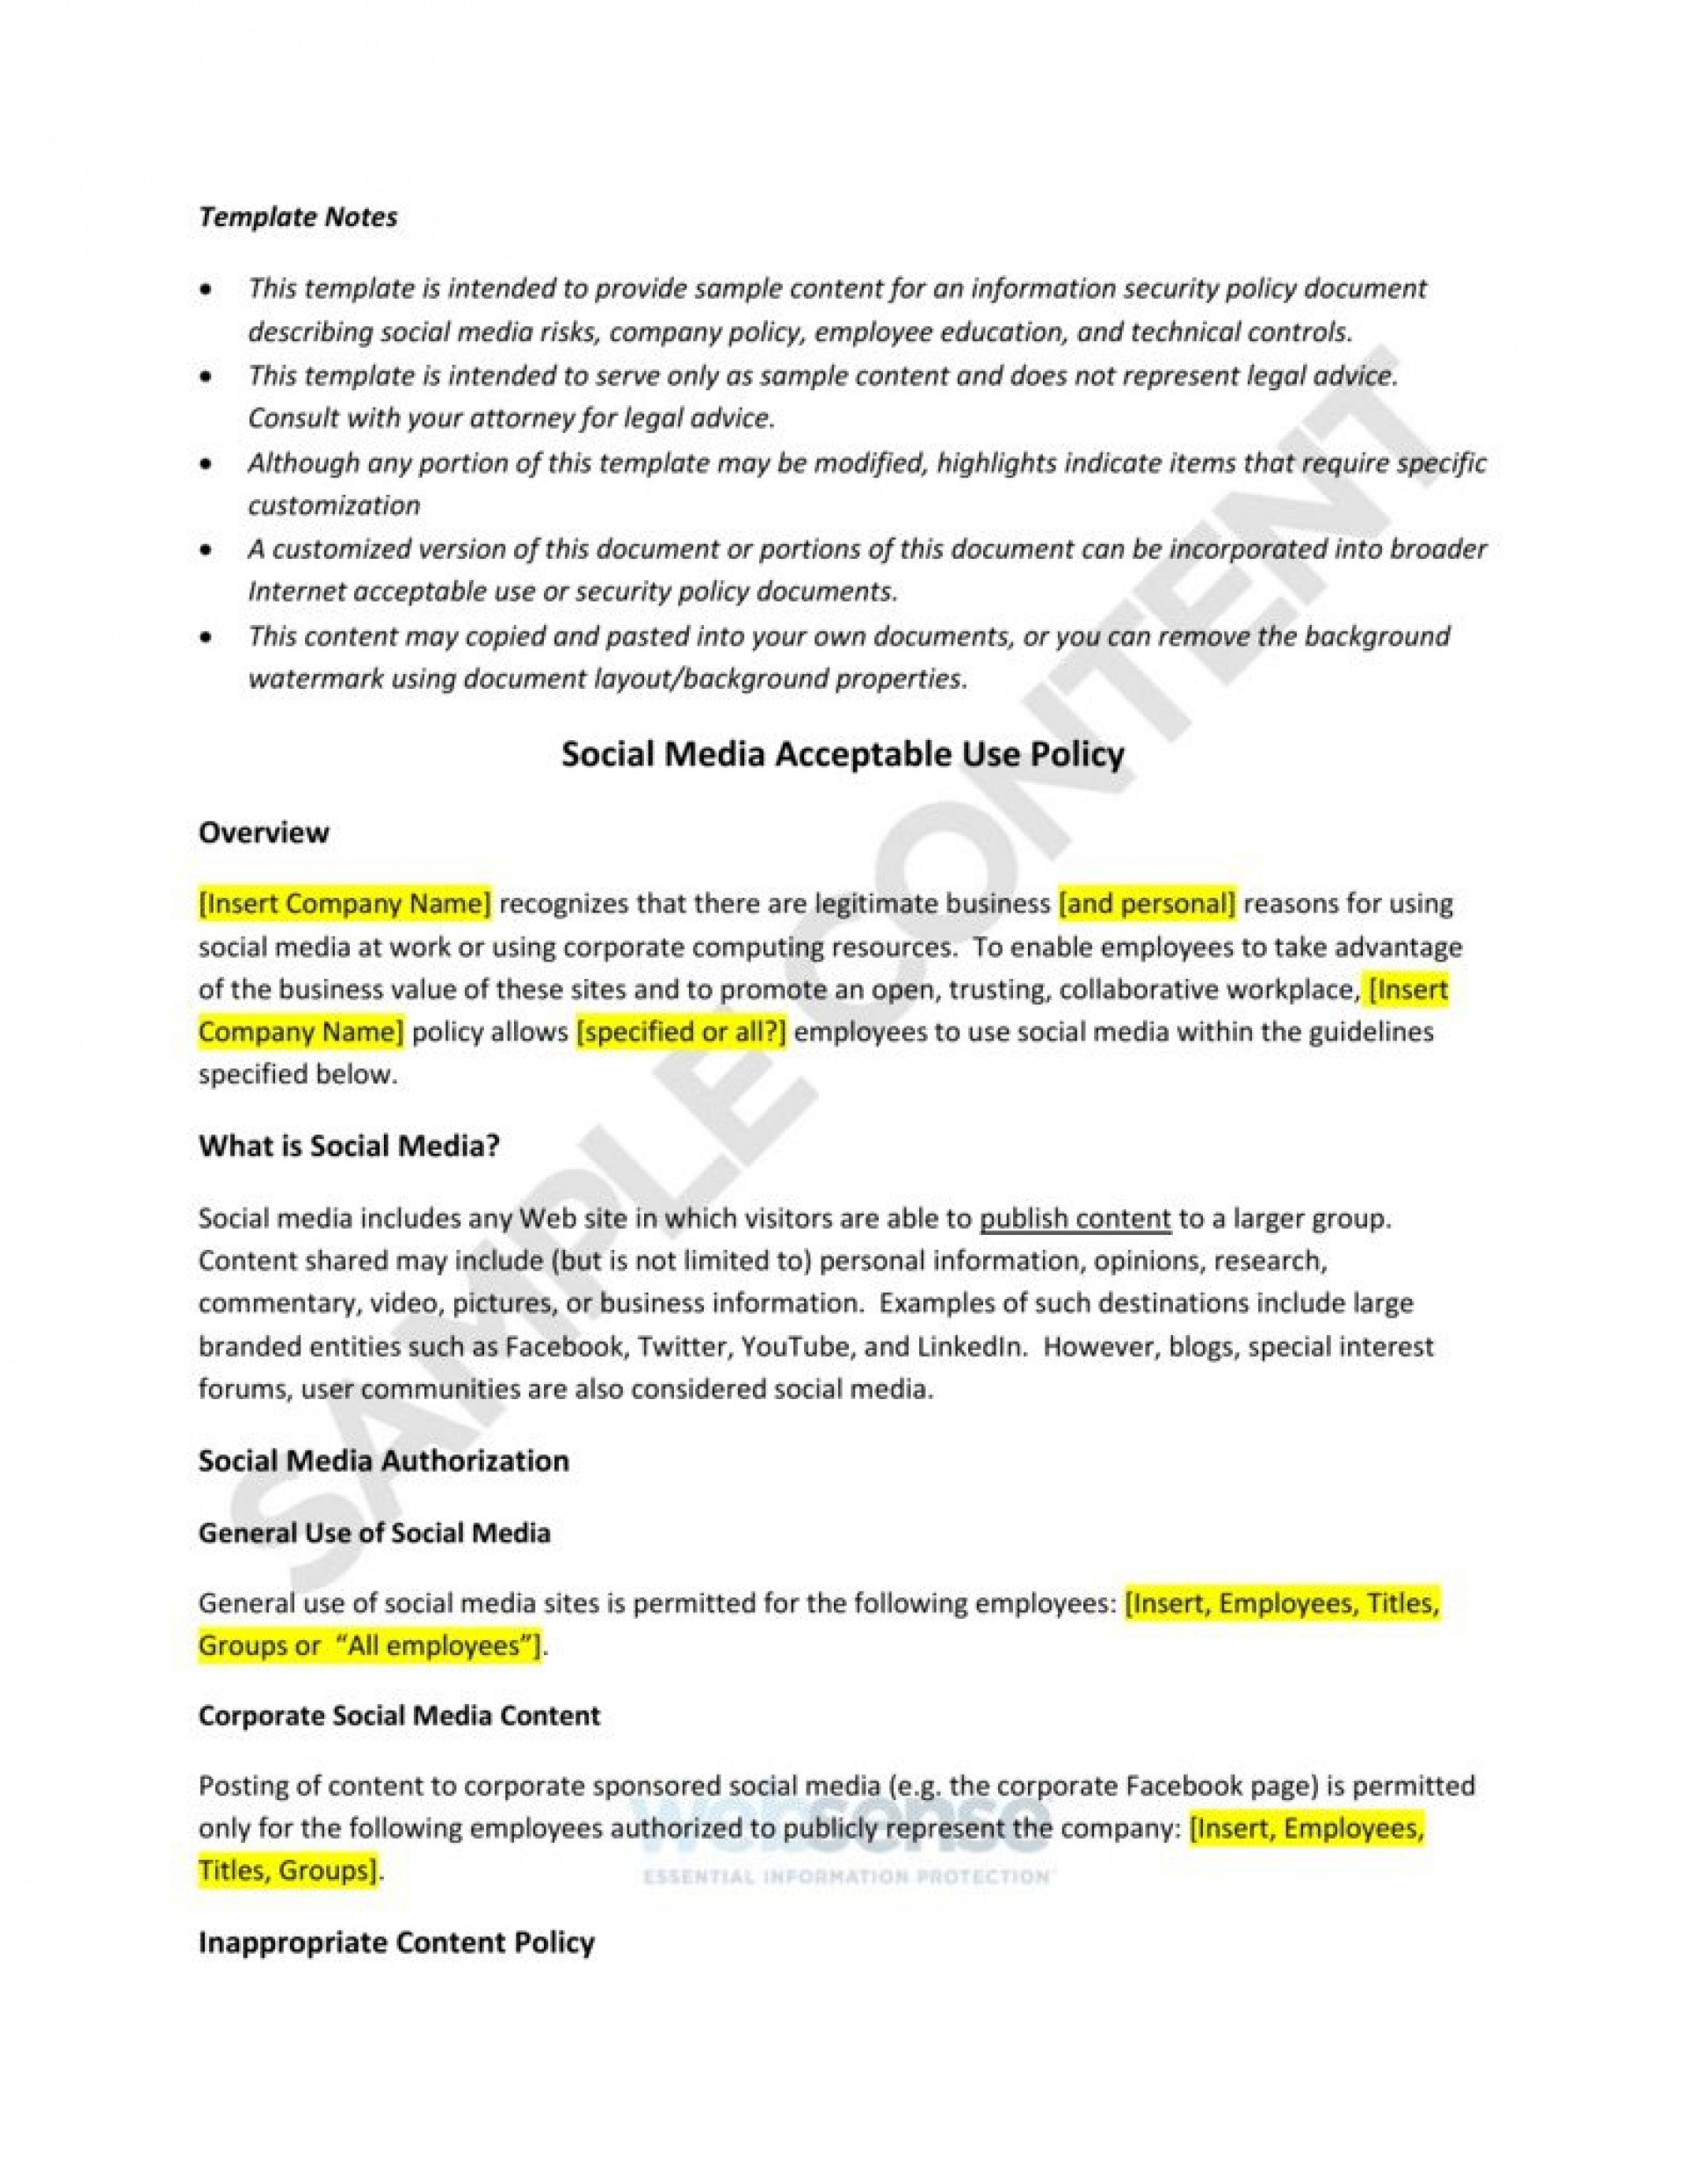 003 Amazing Social Media Policie Template High Definition  Policy For Busines Example Nonprofit Australia Small1920